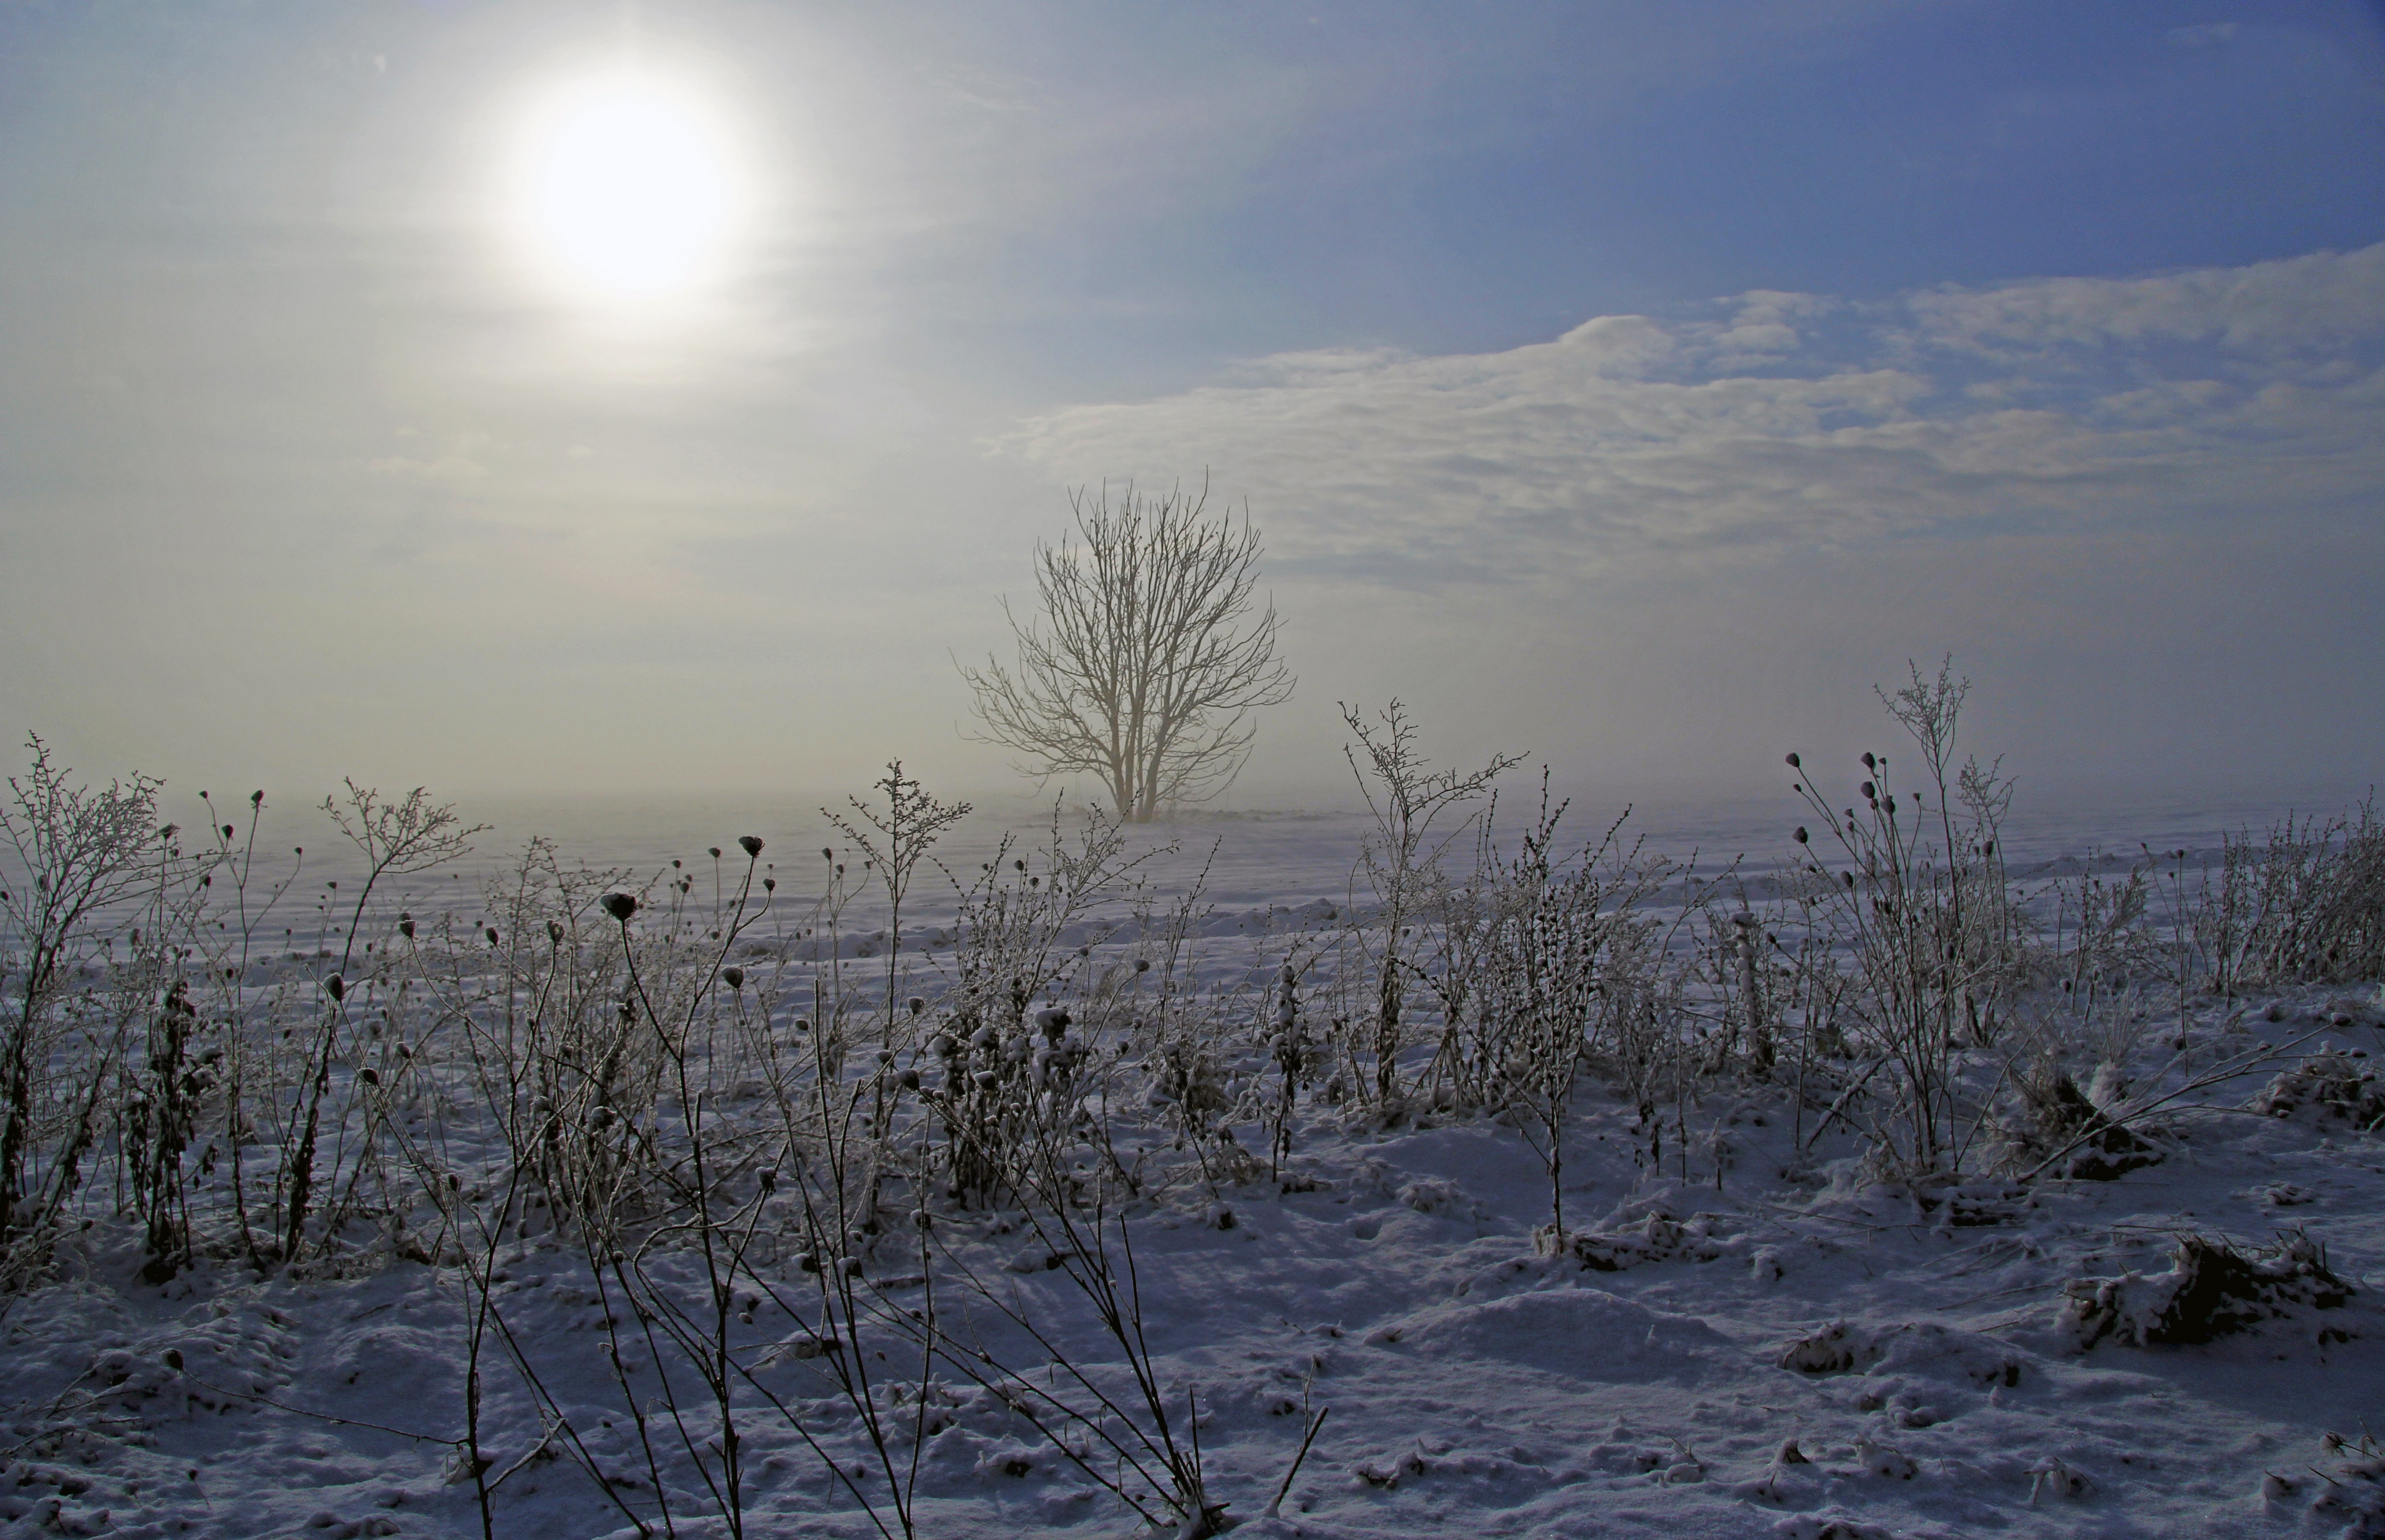 Tall wild grasses and a distant leafless tree under a pale sun on a freezing winter's day